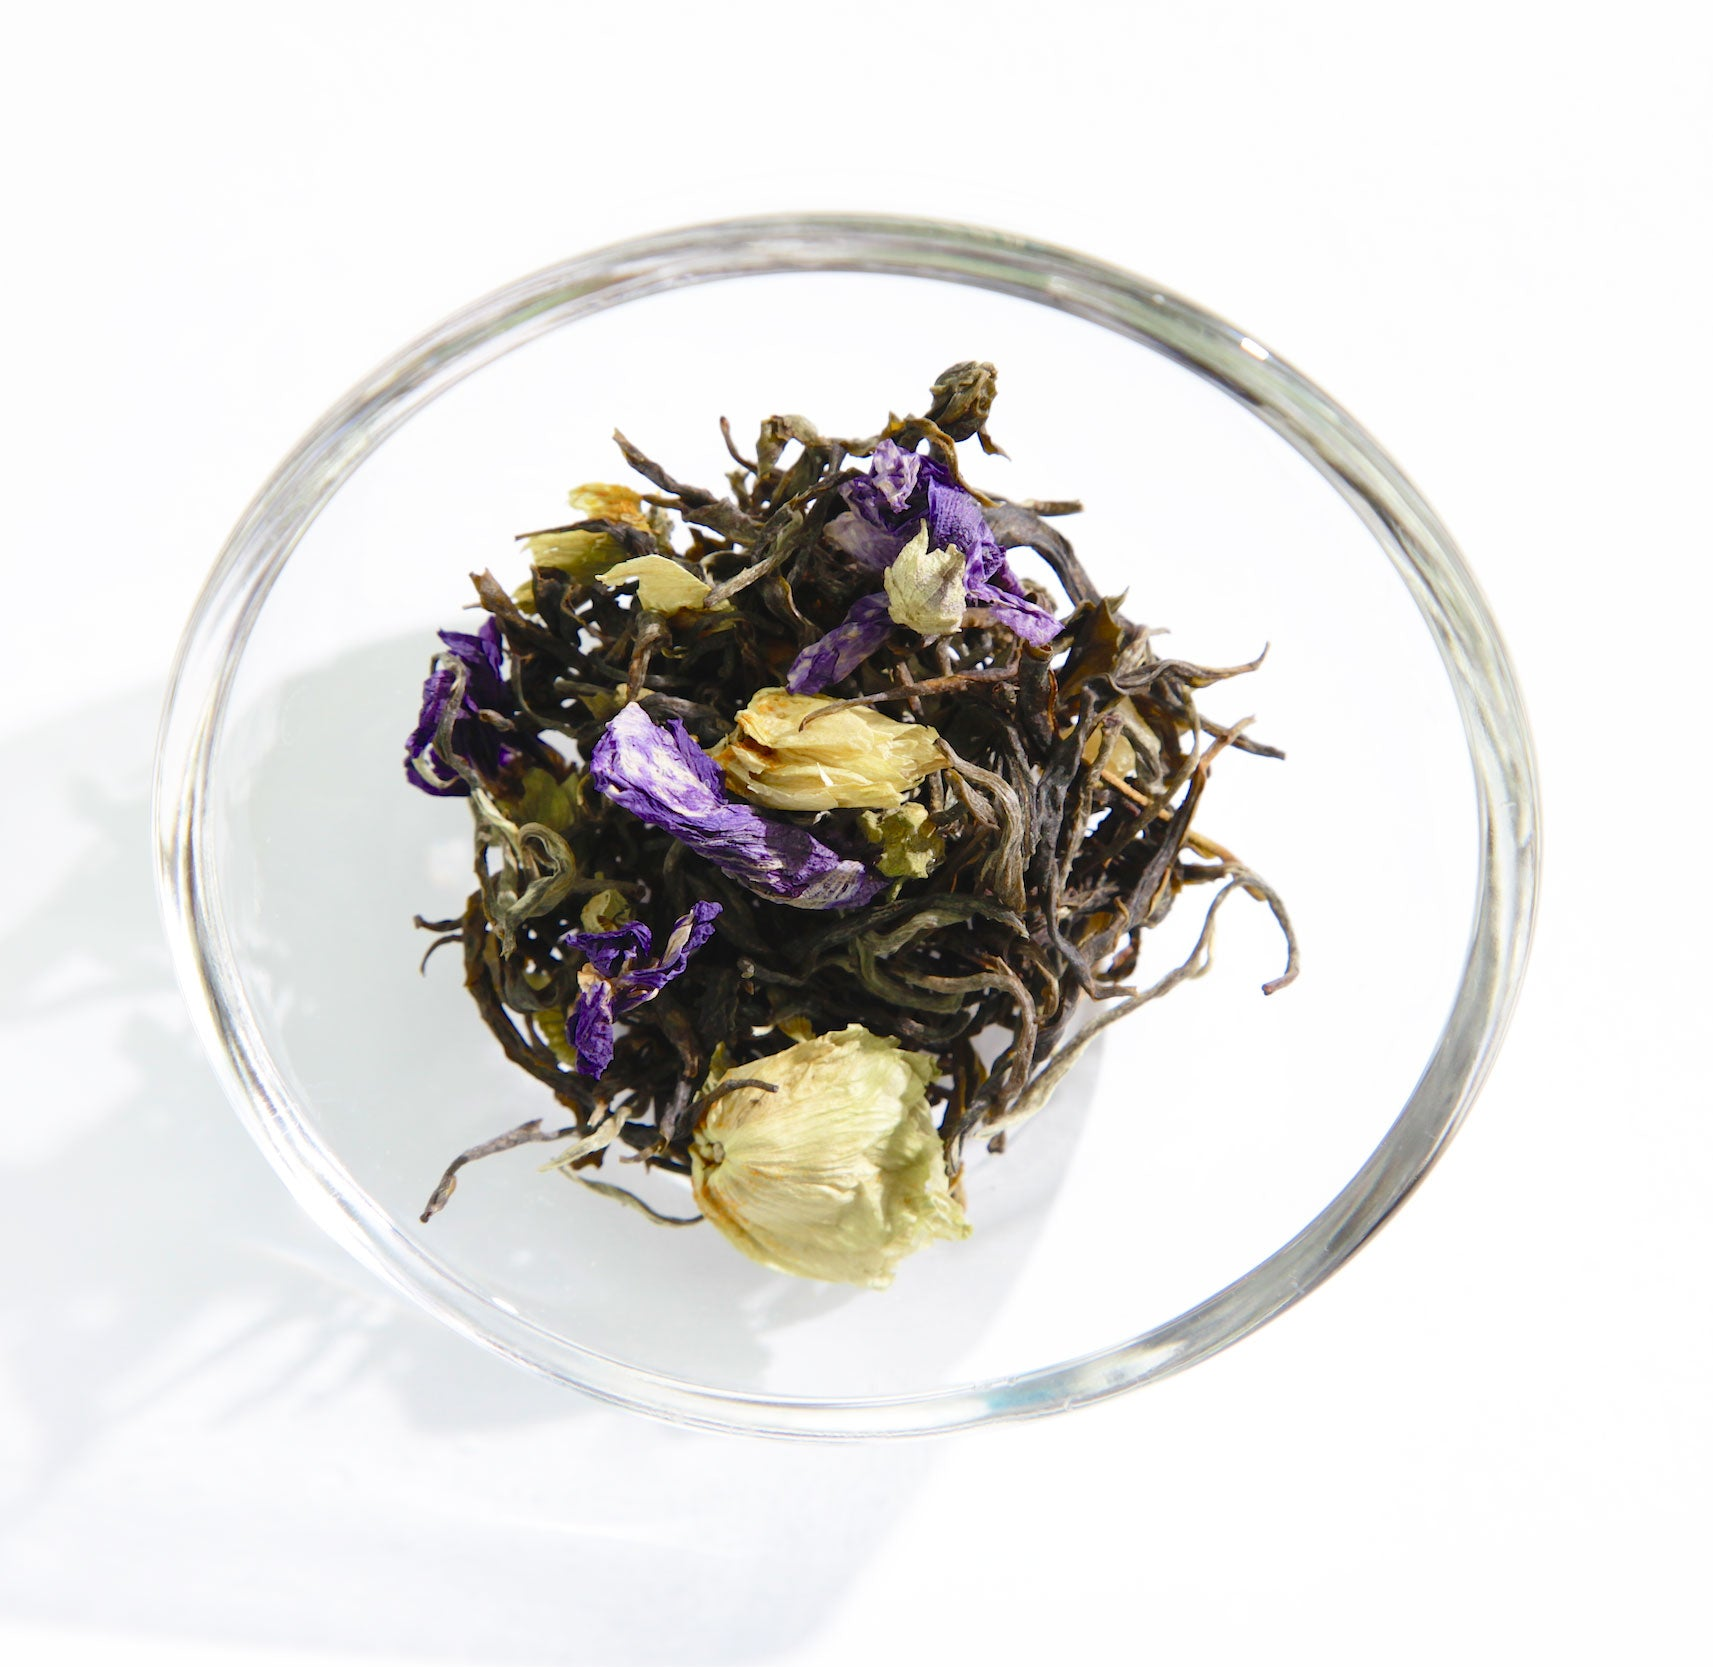 Tea emotea mindfulness Soul&Mind No 110 dried